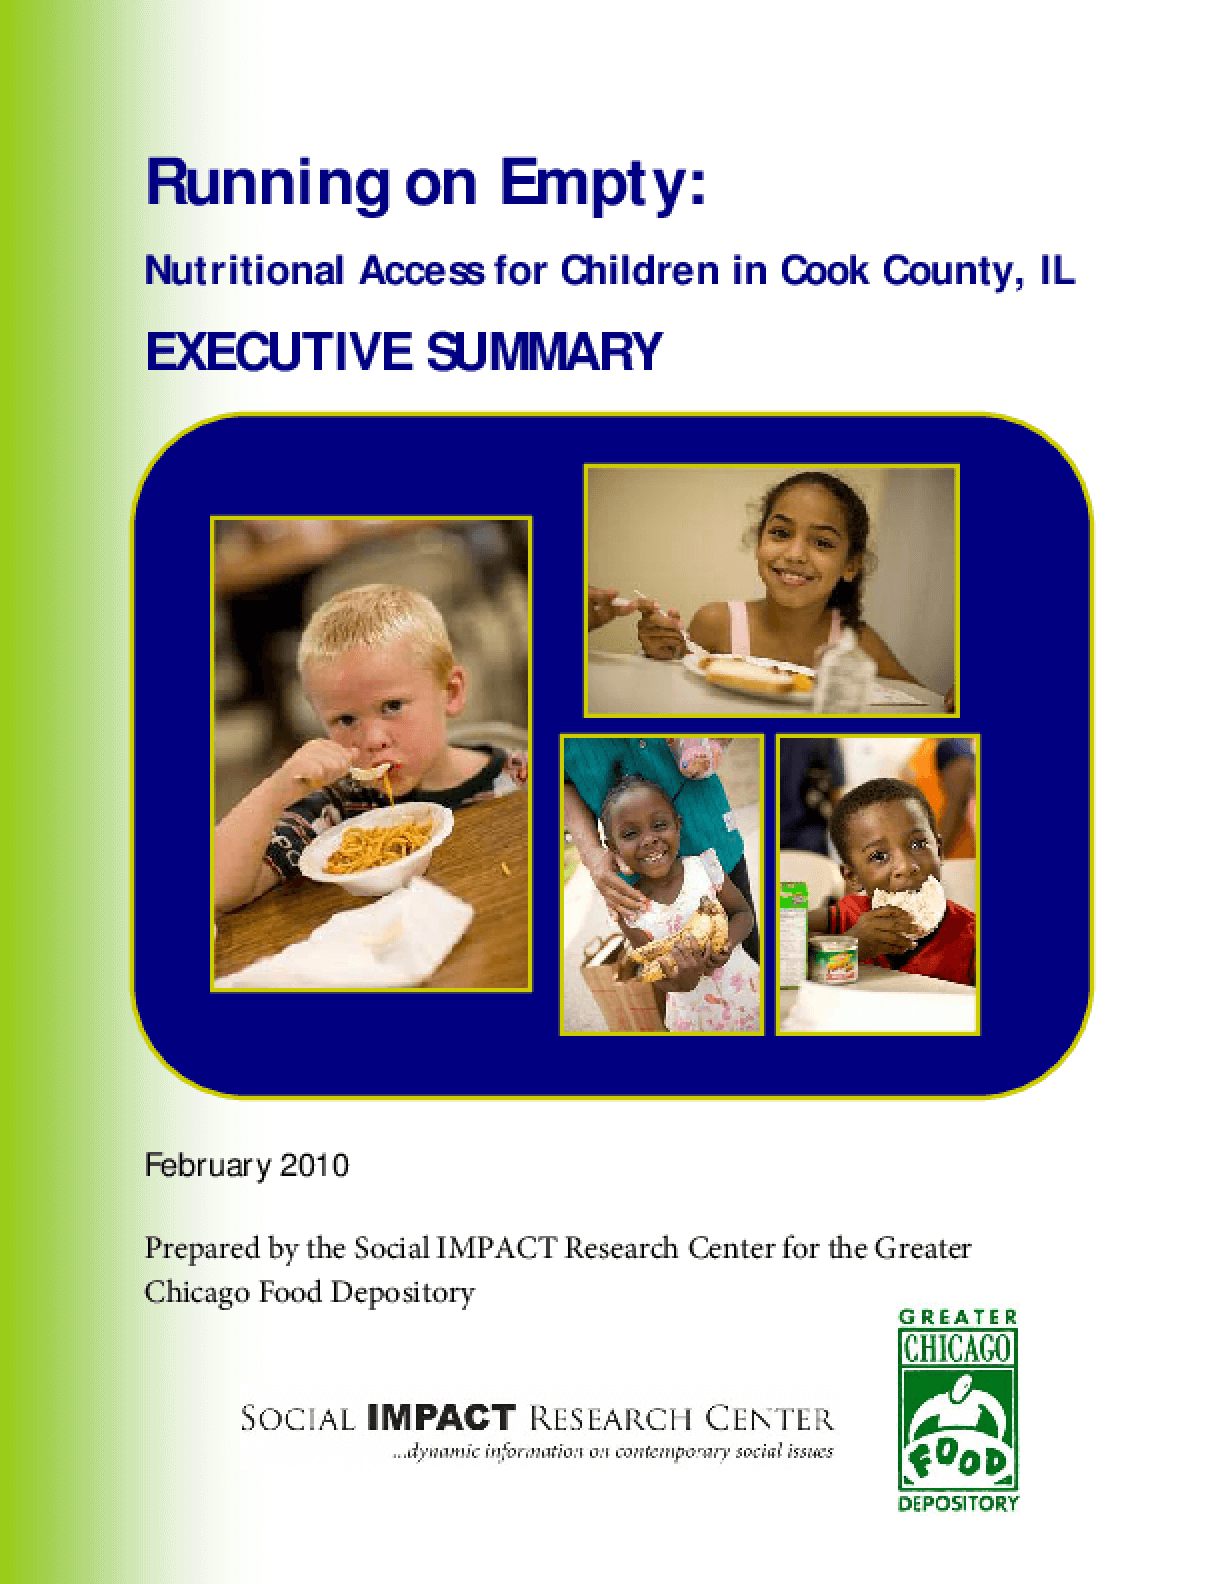 Running on Empty: Nutritional Access for Children in Cook County, IL, Executive Summary